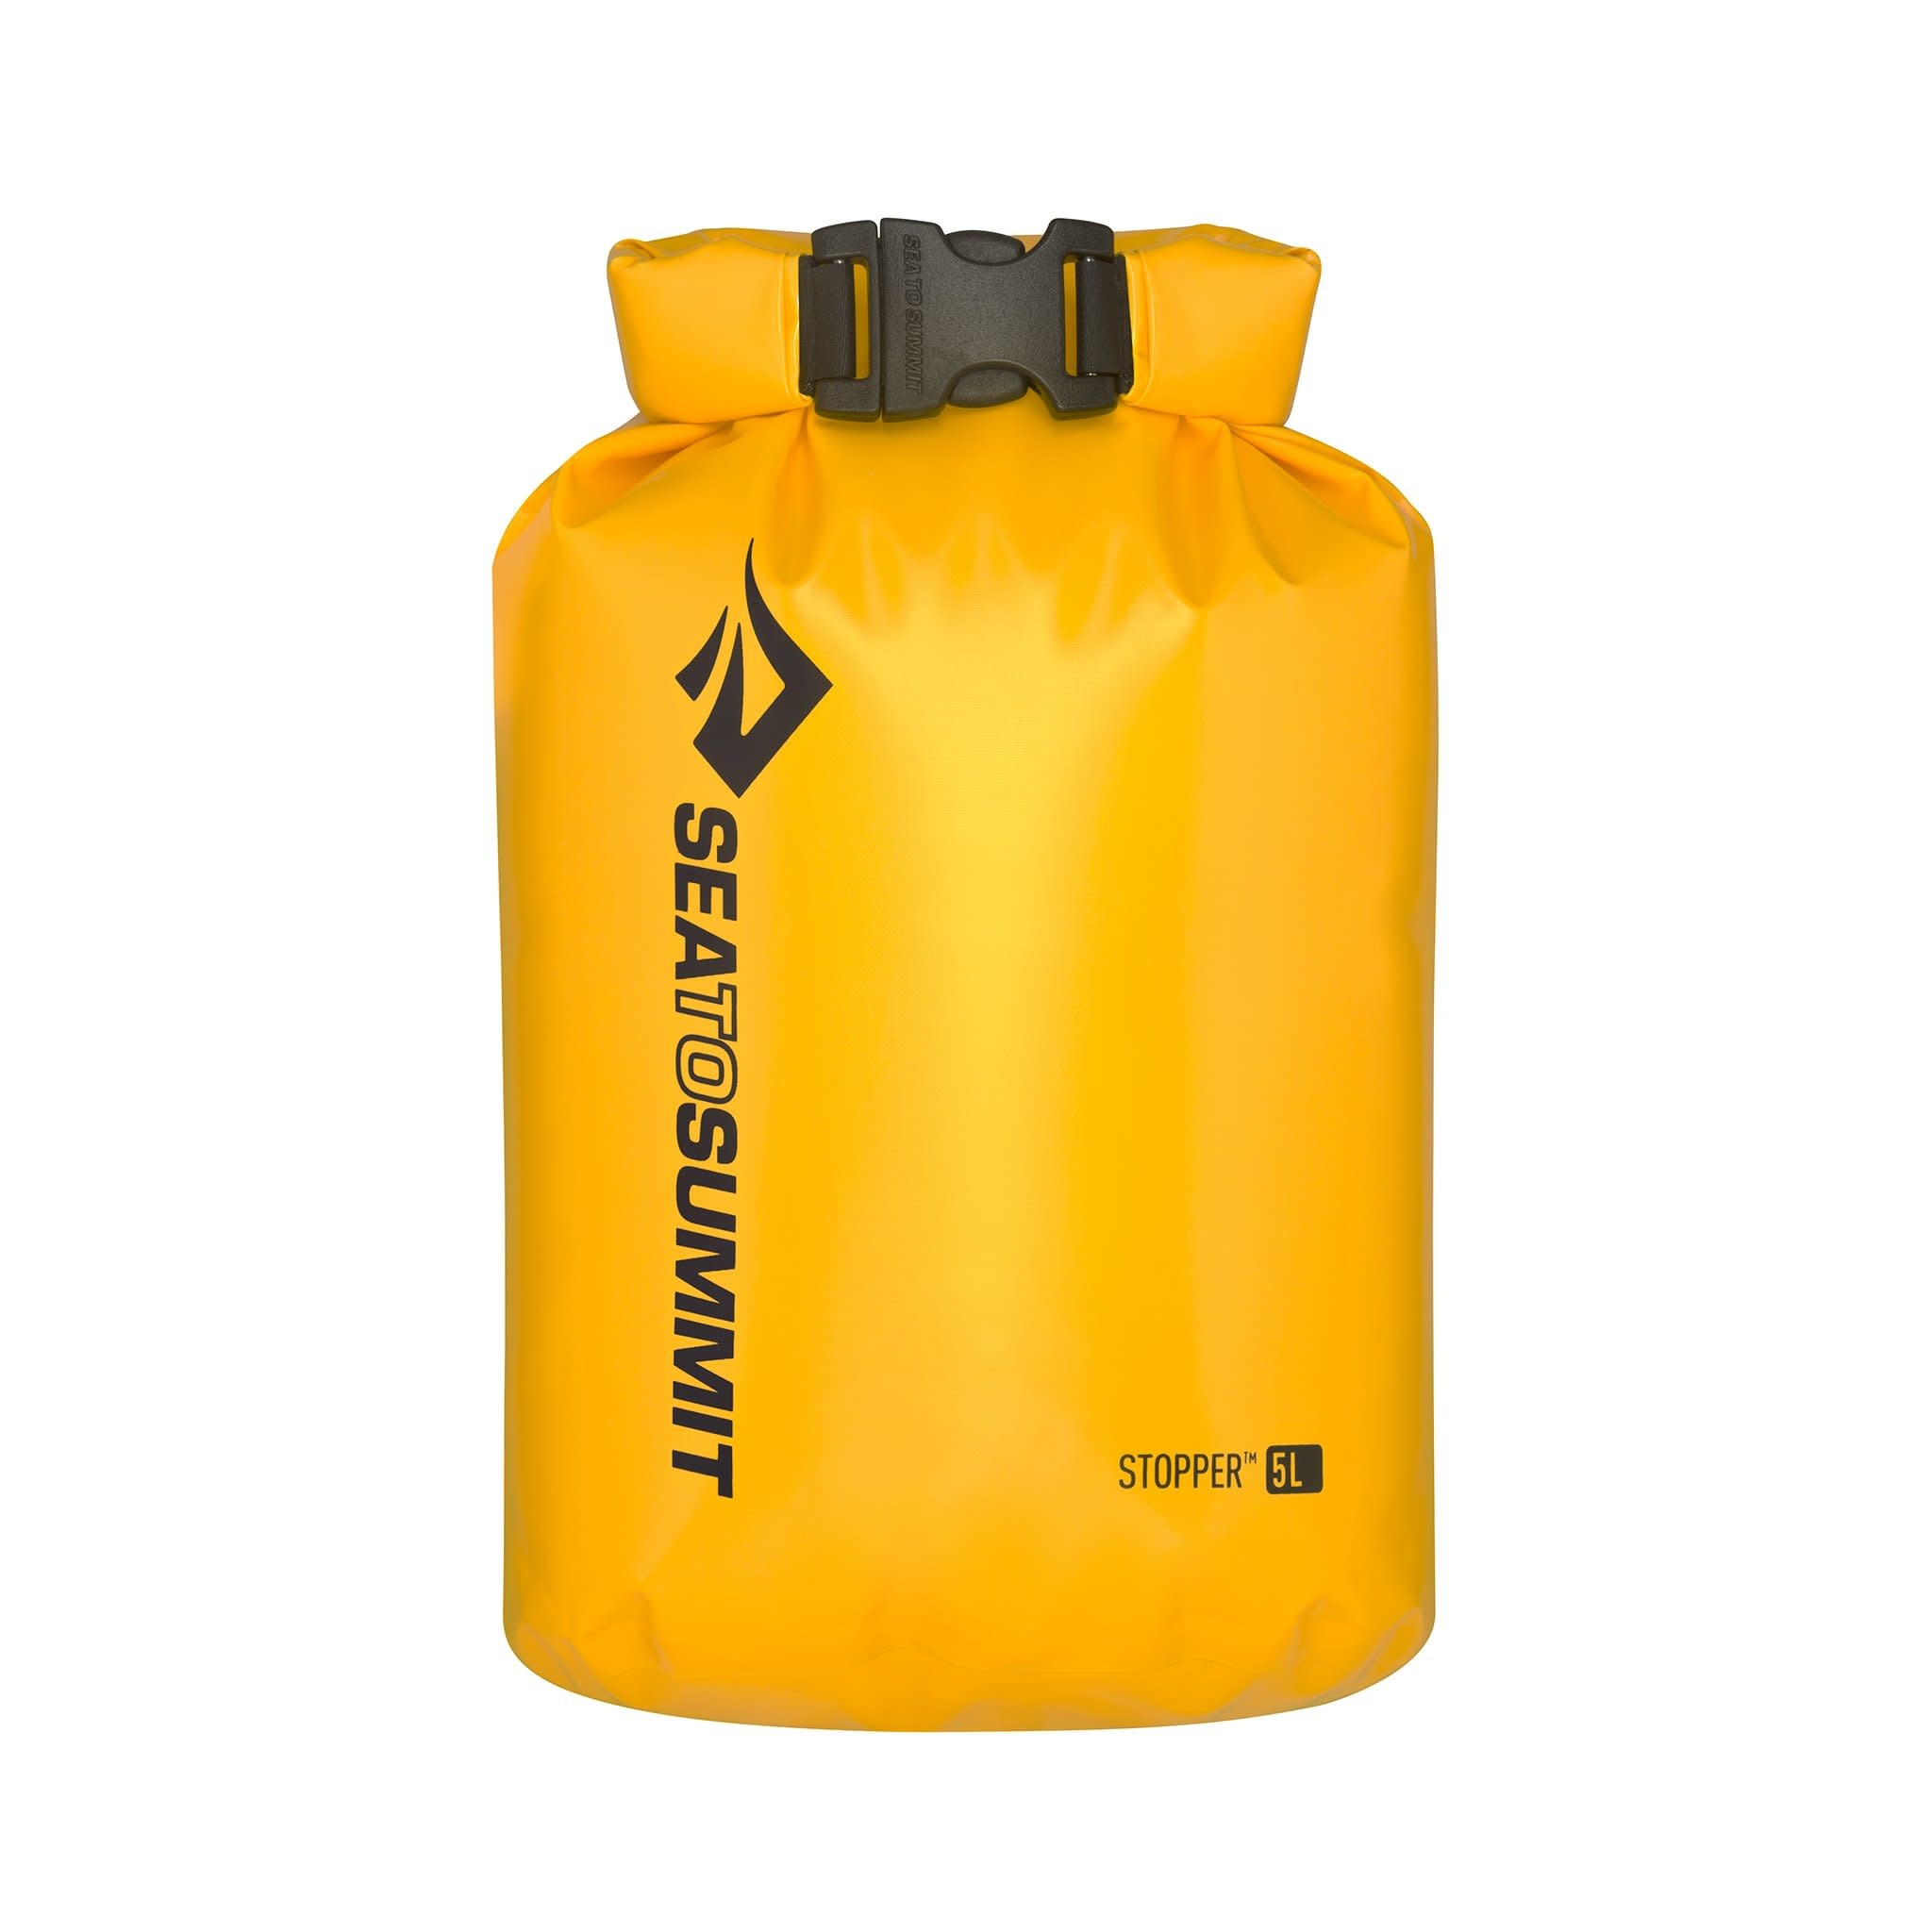 Sea to Summit 5L STOPPER DRY BAG